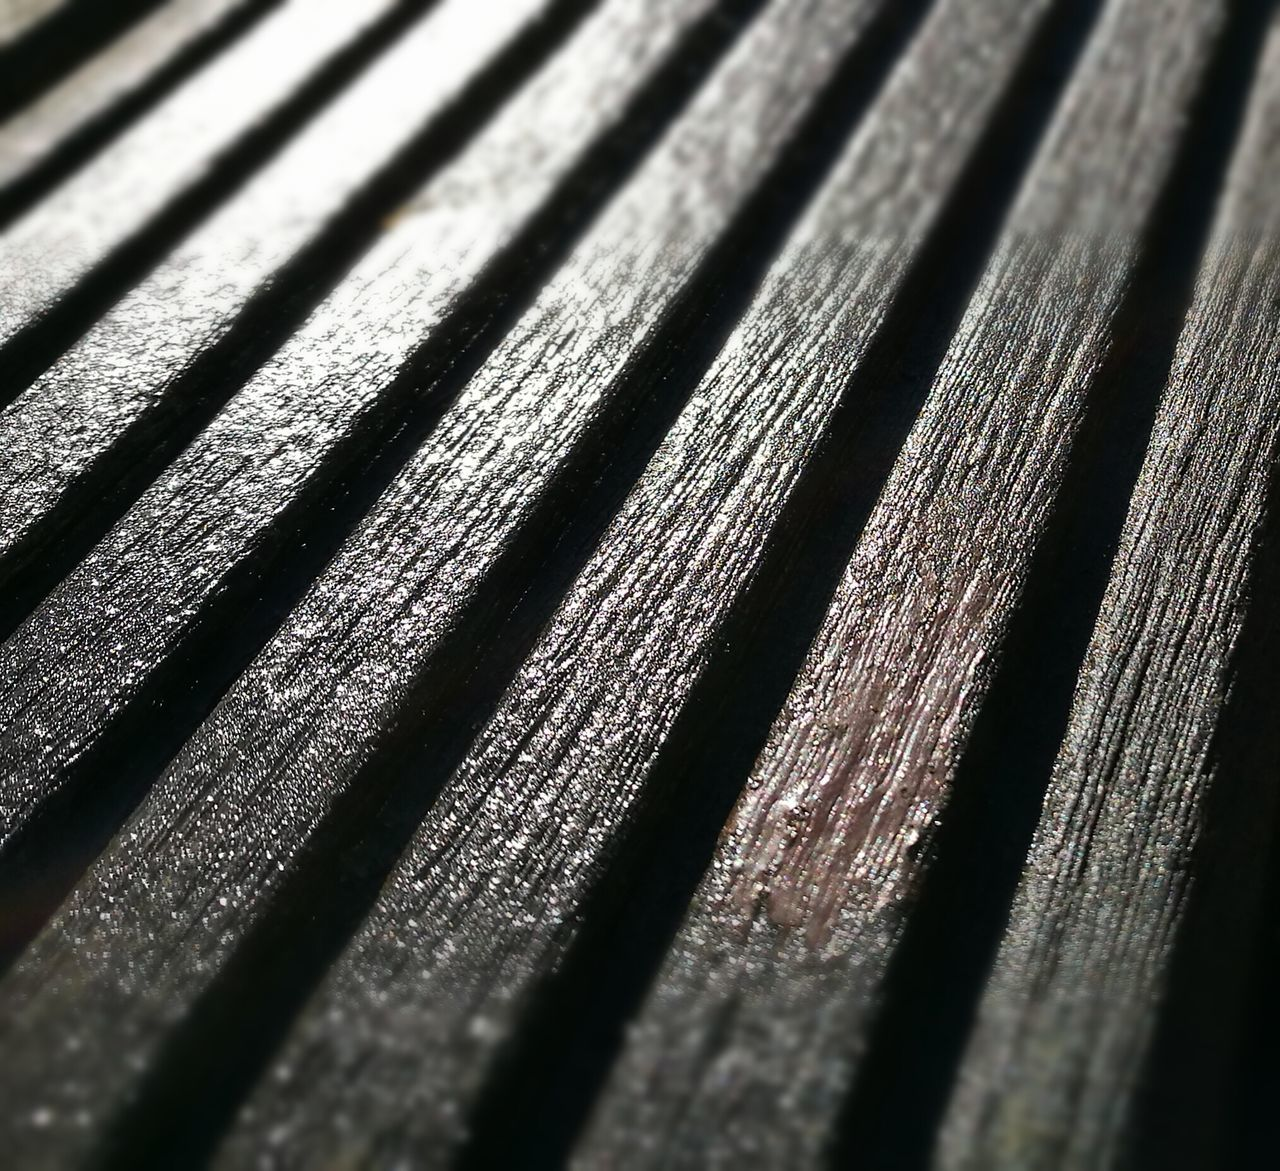 wood - material, backgrounds, full frame, pattern, textured, close-up, no people, day, outdoors, line, wood grain, corrugated iron, nature